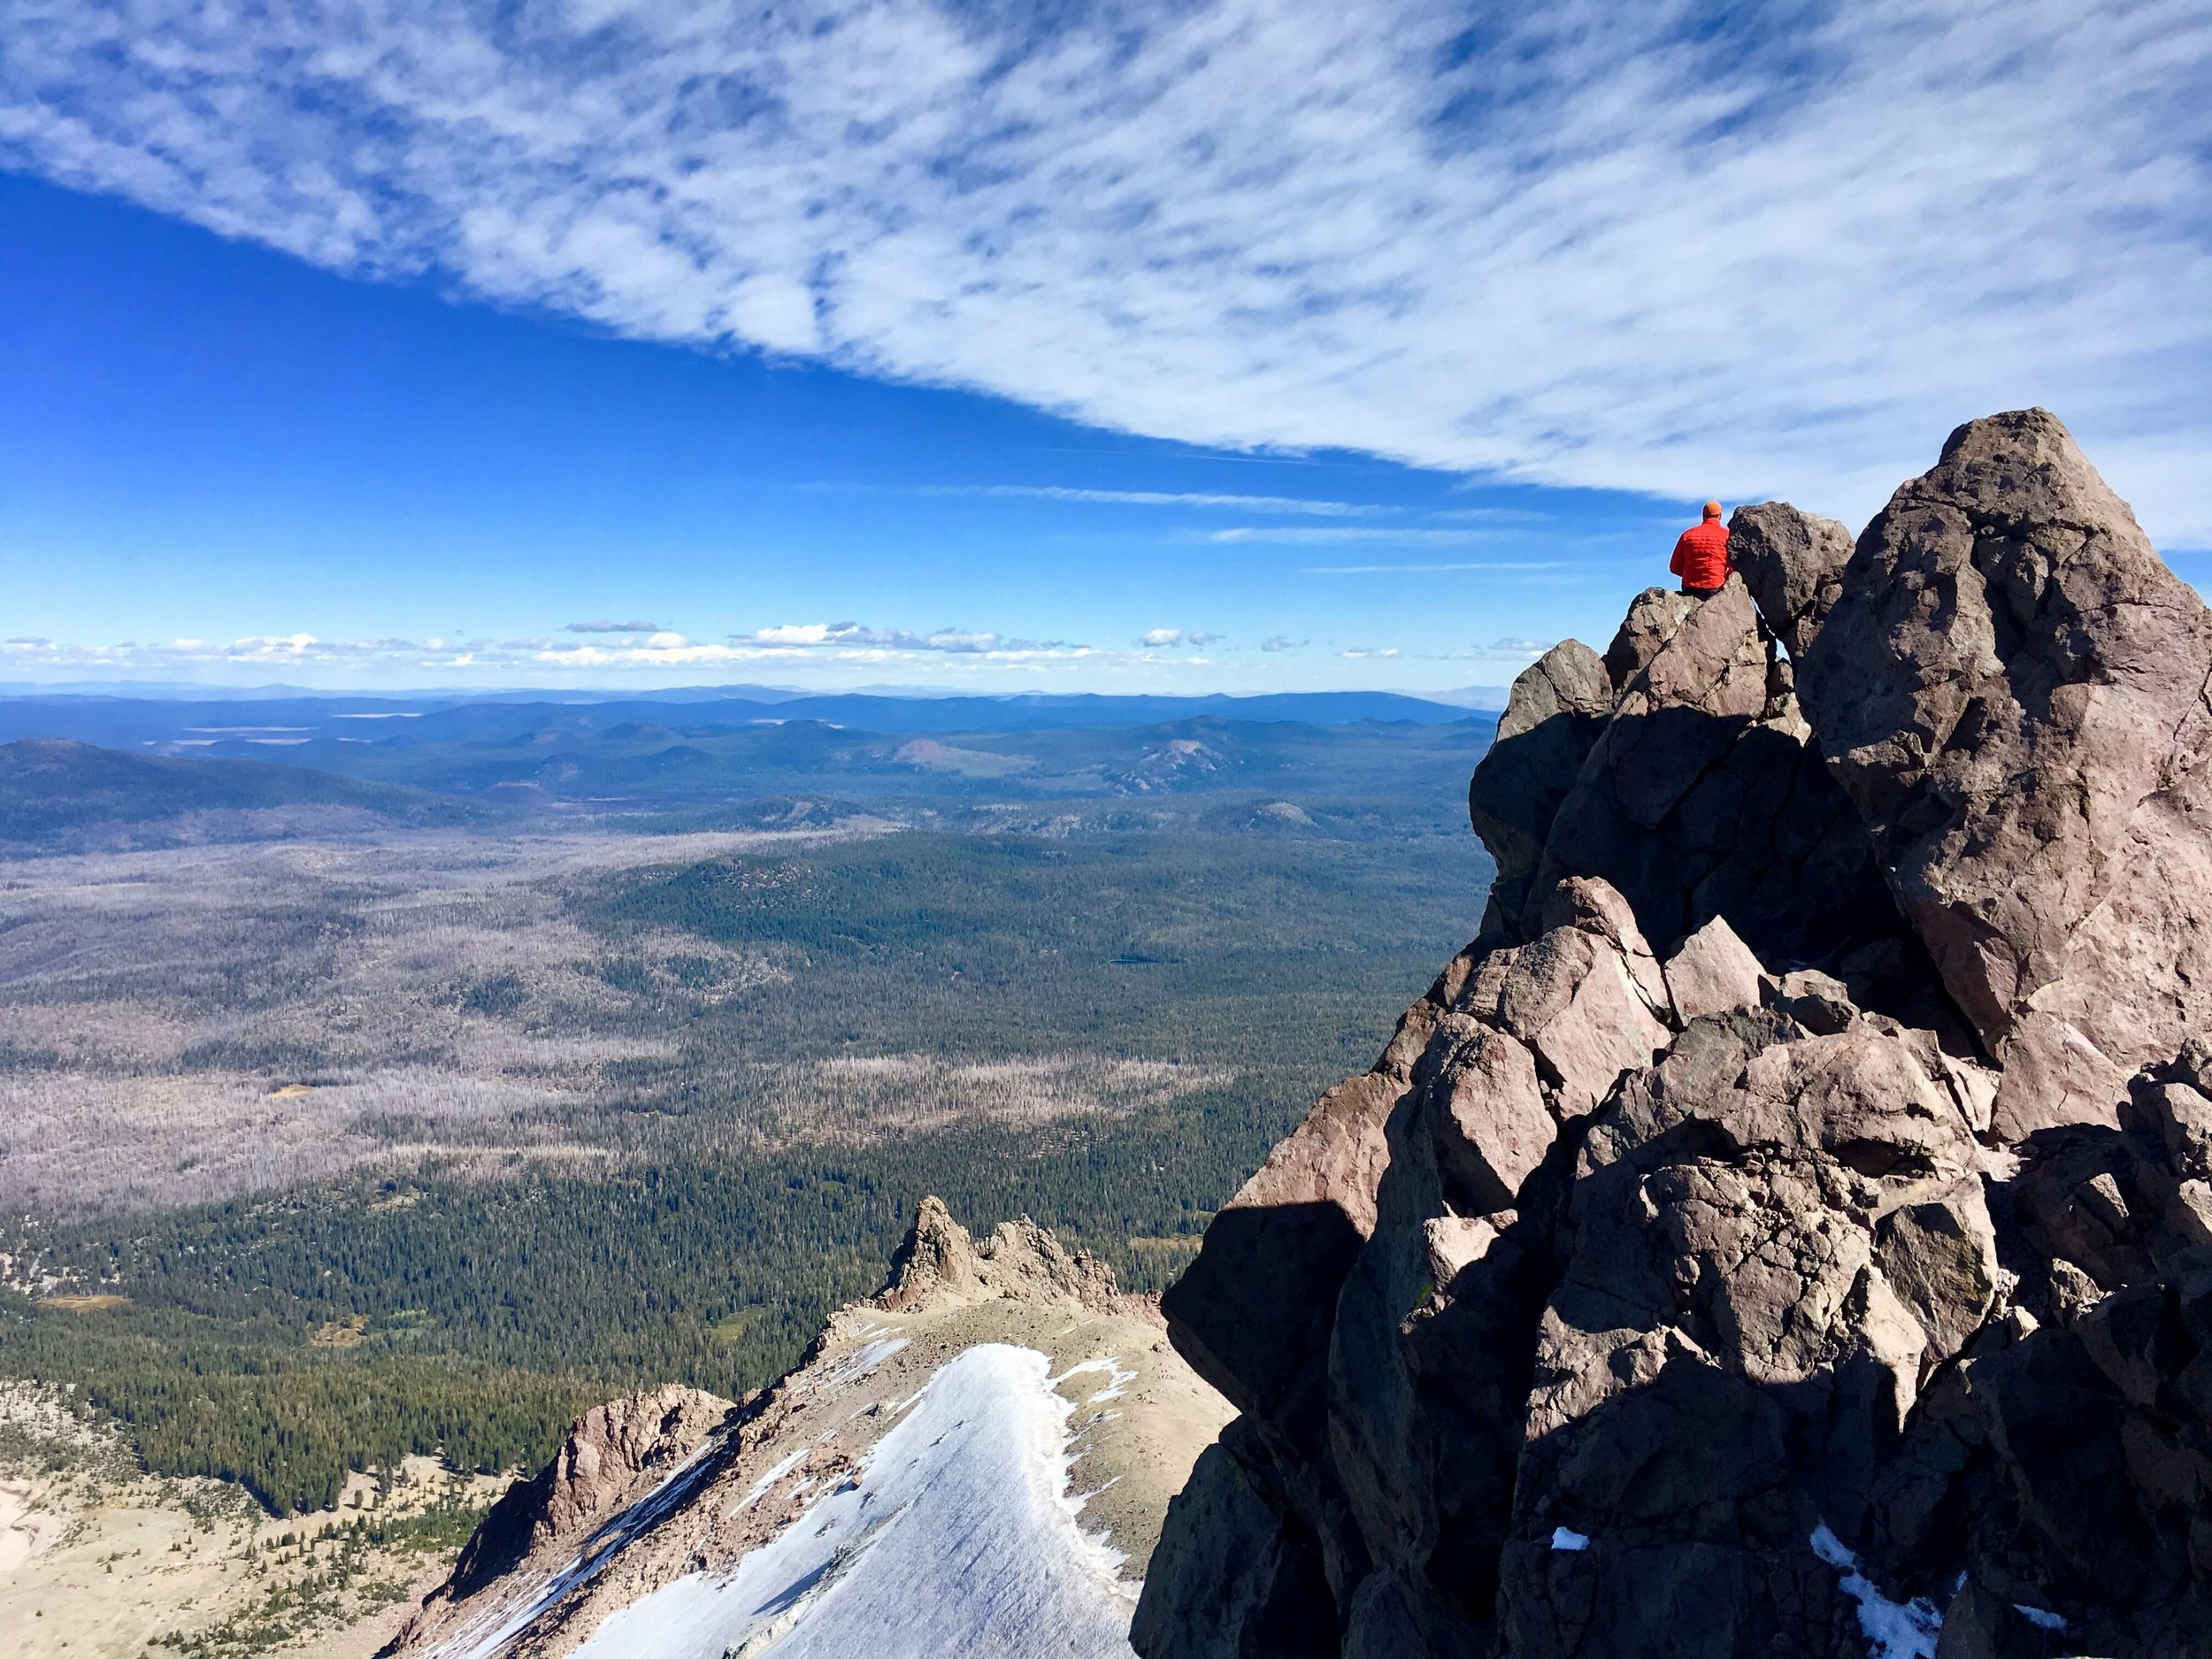 Sitting on the top of Lassen Peak, watching the birds fly by. Sitting on the top of Lassen Peak, wasting time.